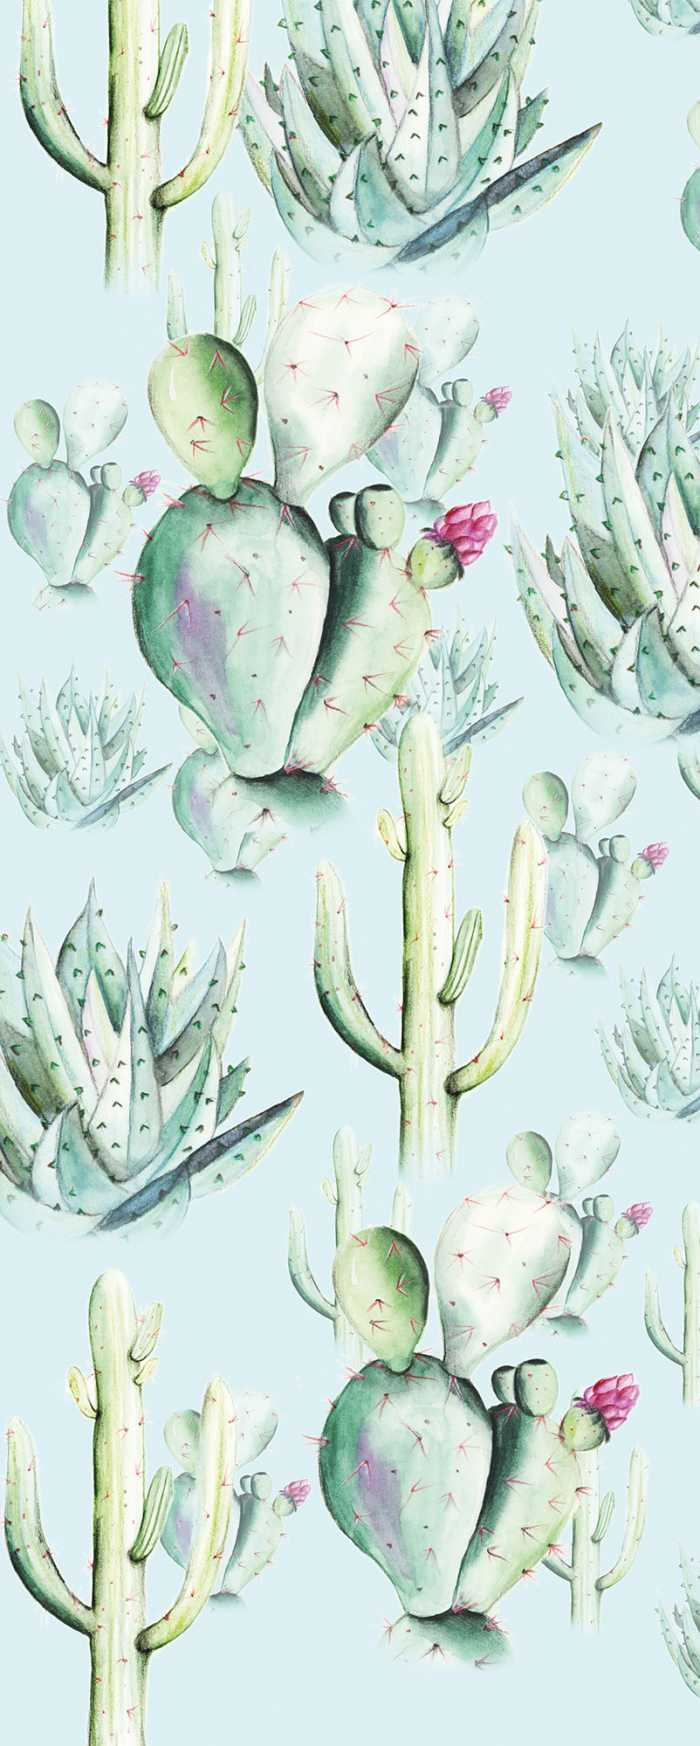 Digital wallpaper Cactus Blue